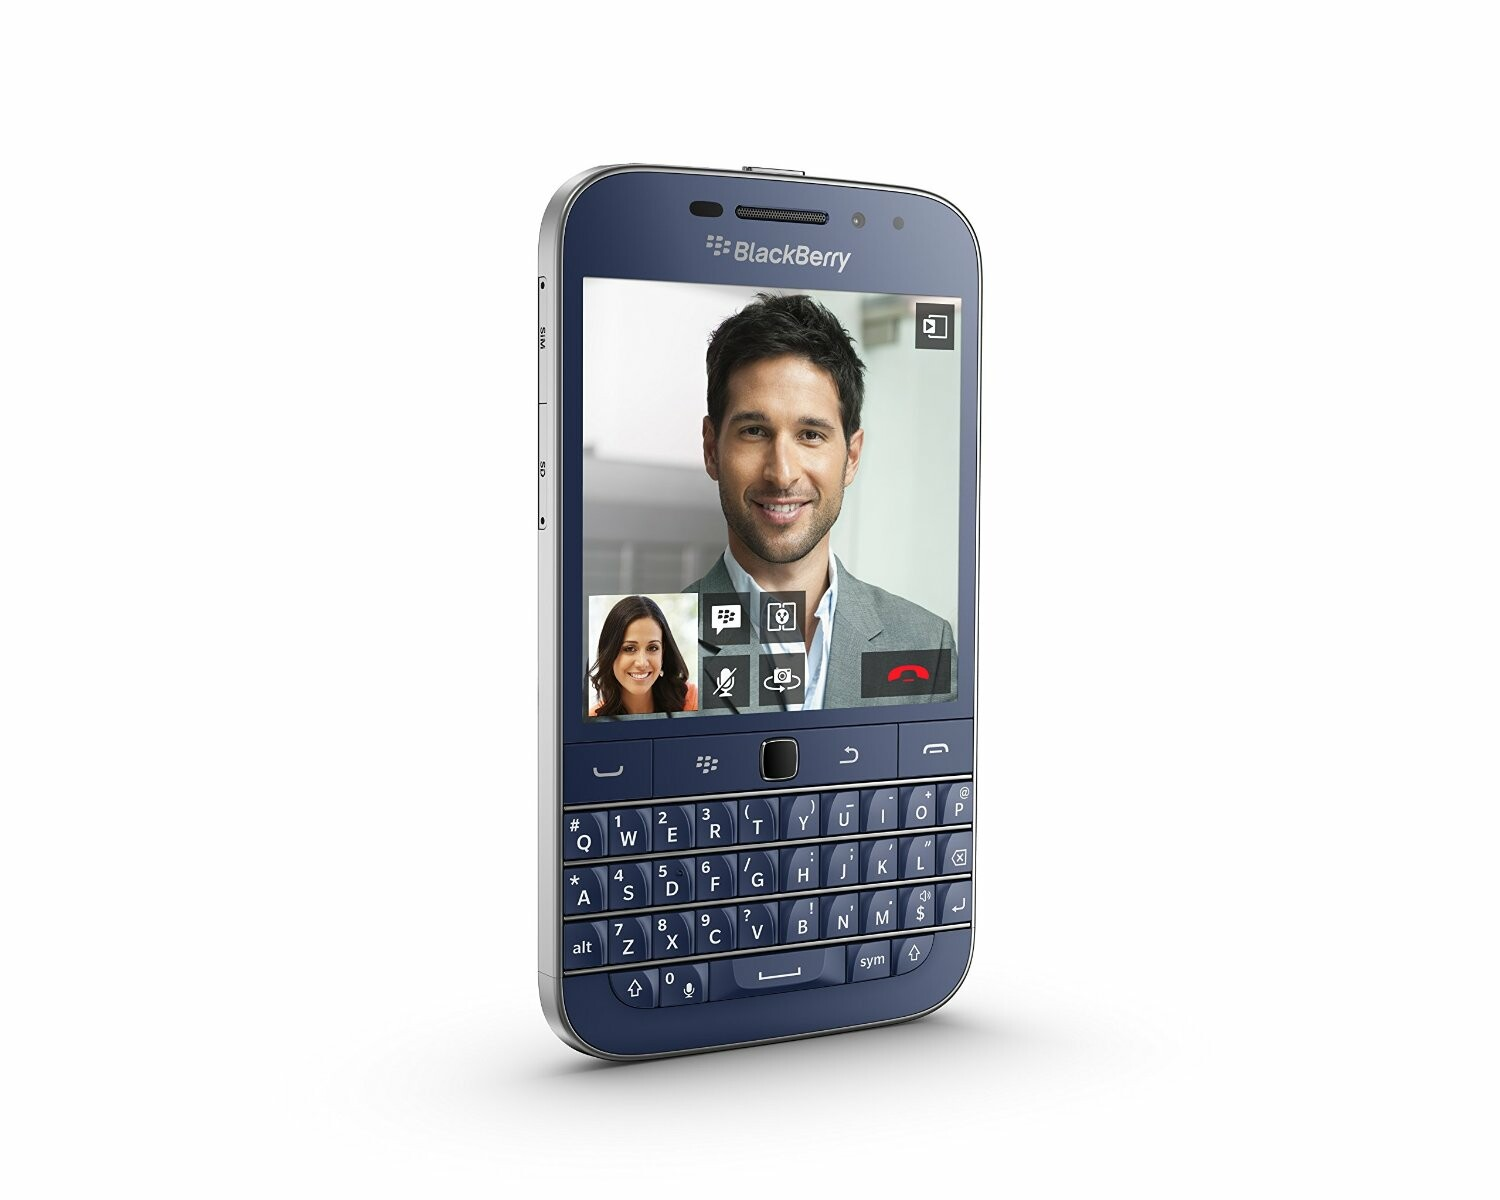 Cobalt Blue BlackBerry Classic goes on sale in the US, Canada, UK